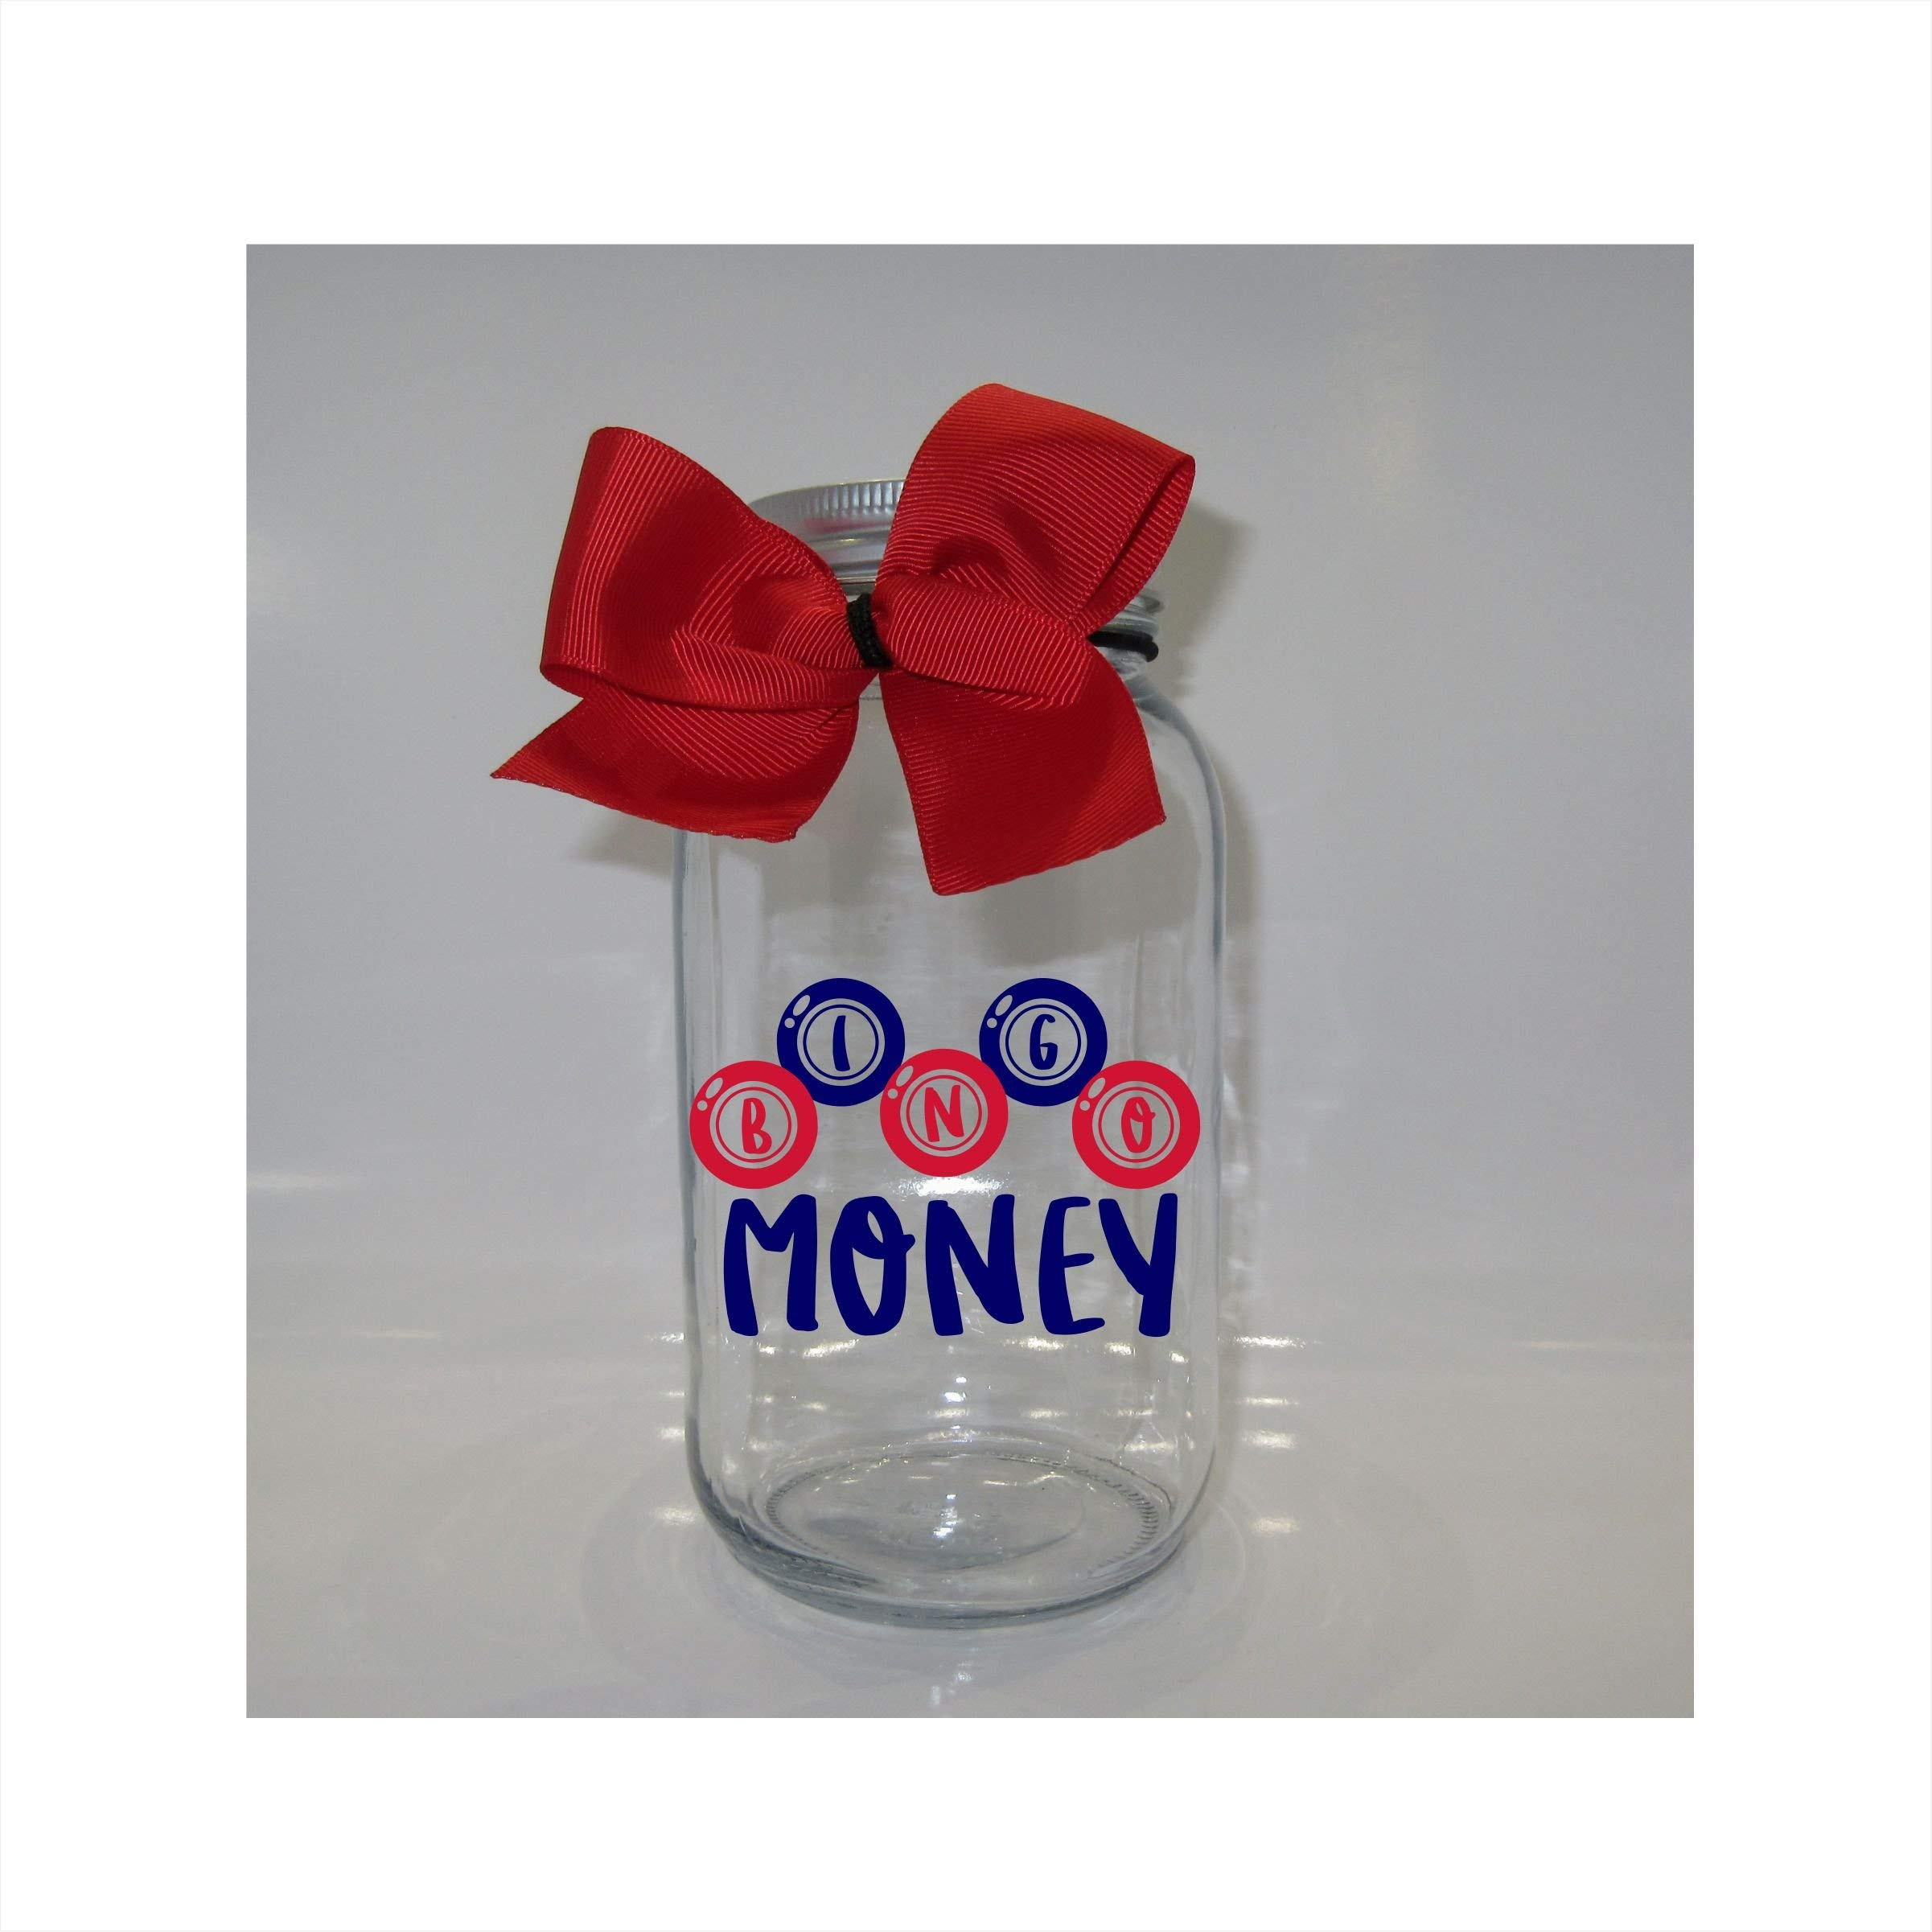 Bingo Money Mason Jar Bank - Coin Slot Lid - Available in 3 Sizes